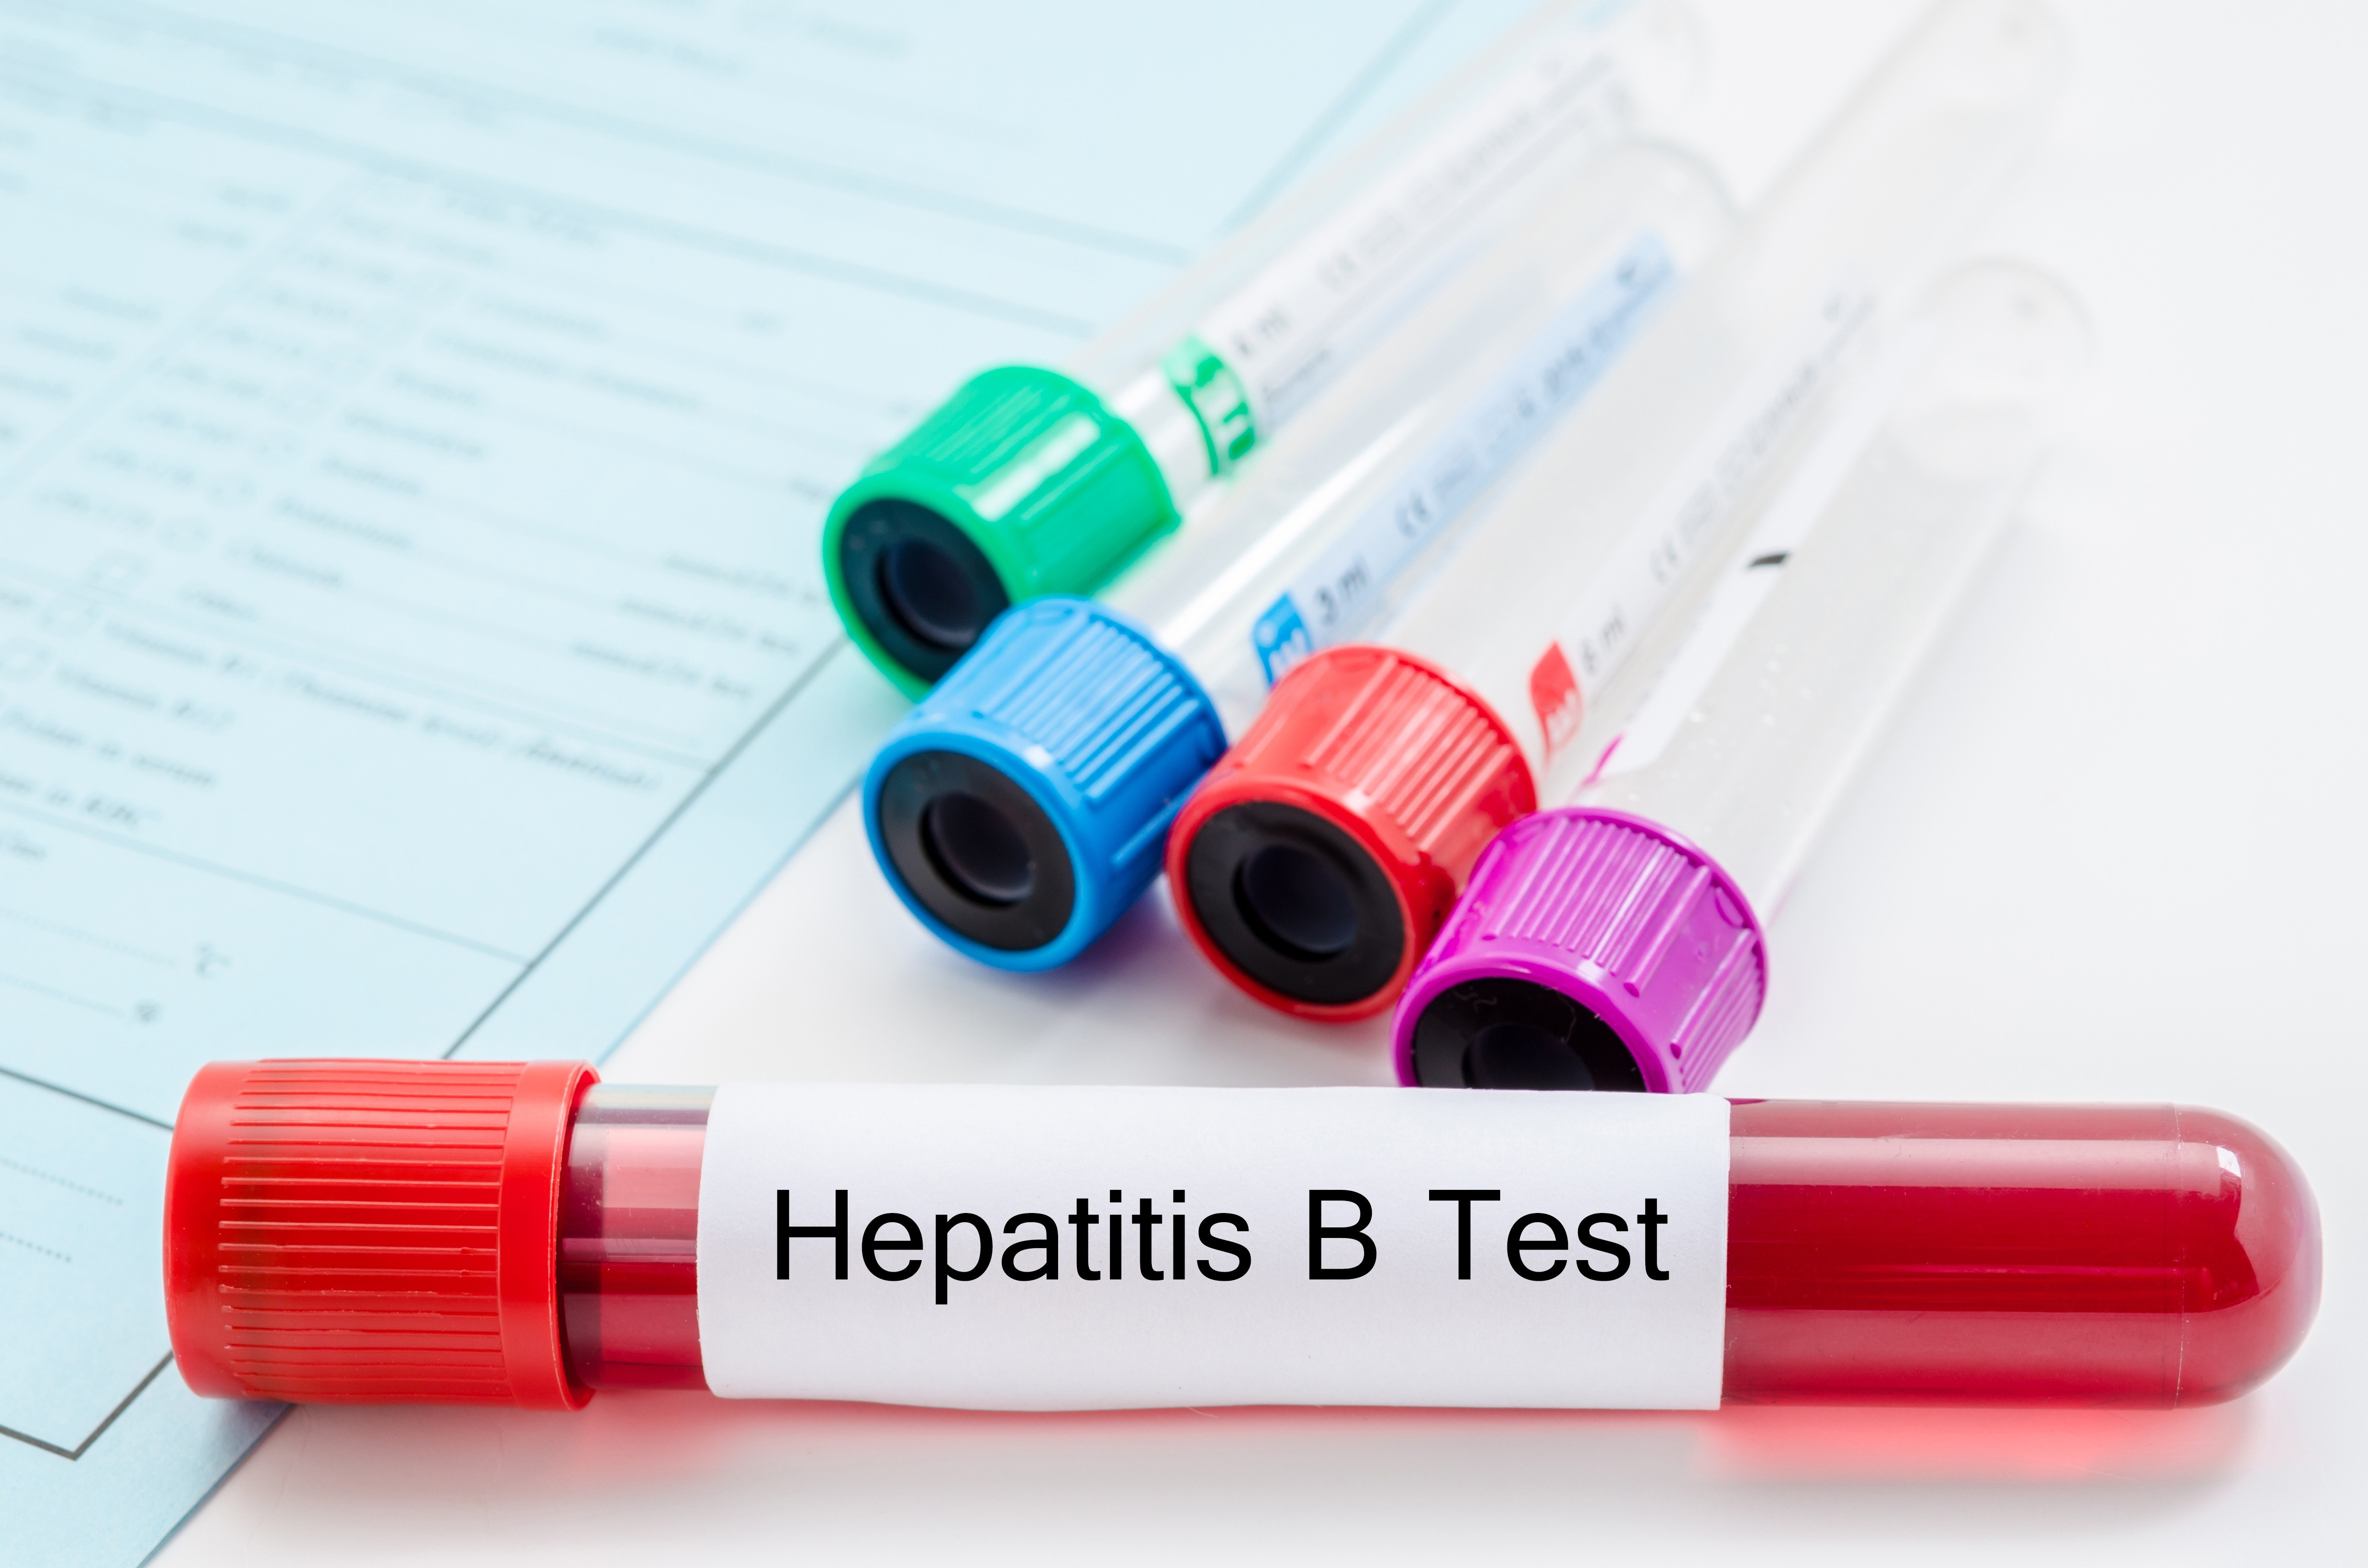 An image depicting a person suffering from hepatitis b symptoms